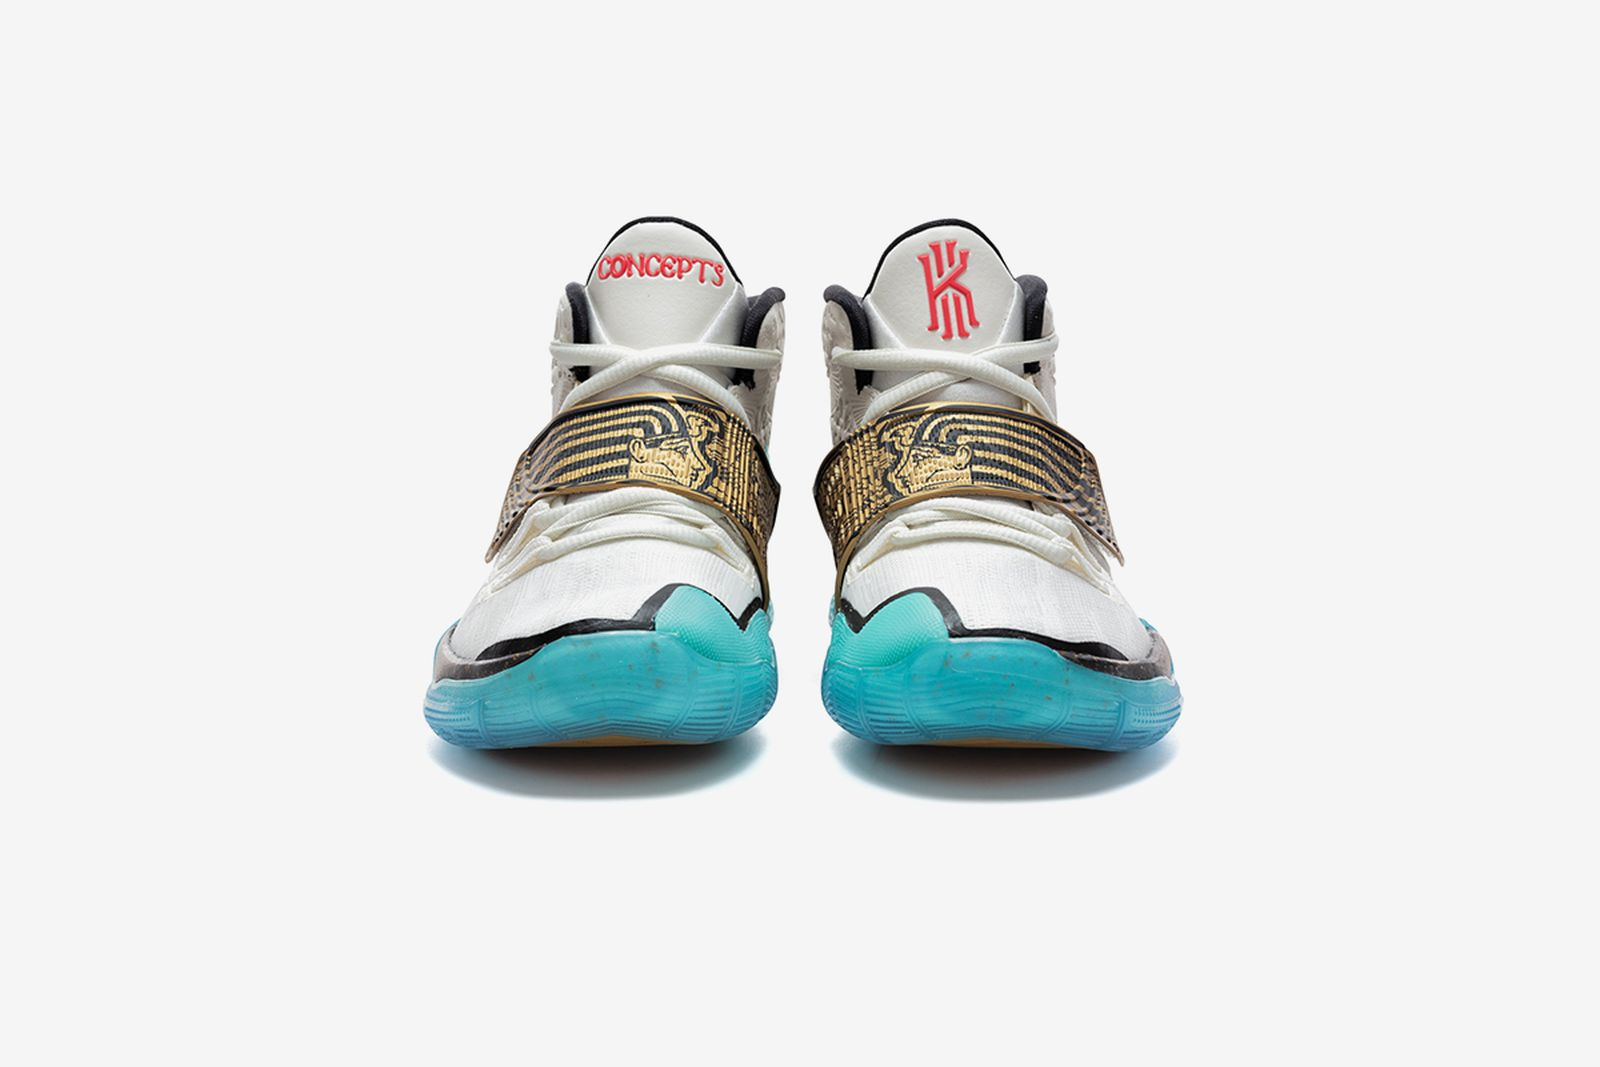 concepts-nike-kyrie-6-release-date-price-15